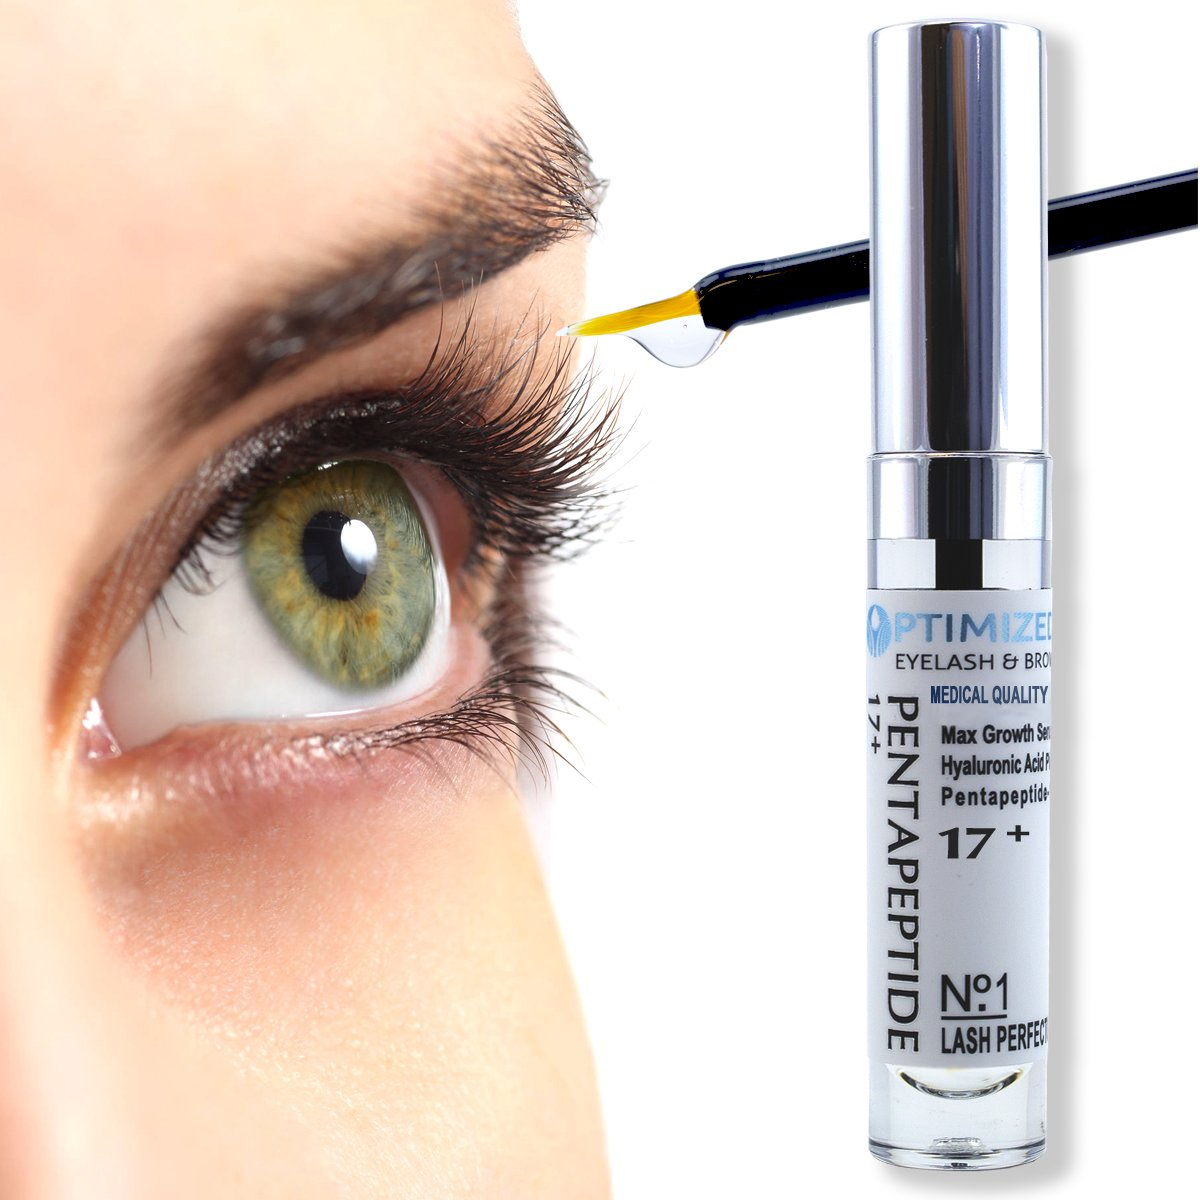 The 7 Best Lash Growth Serums to Buy in 2019 advise